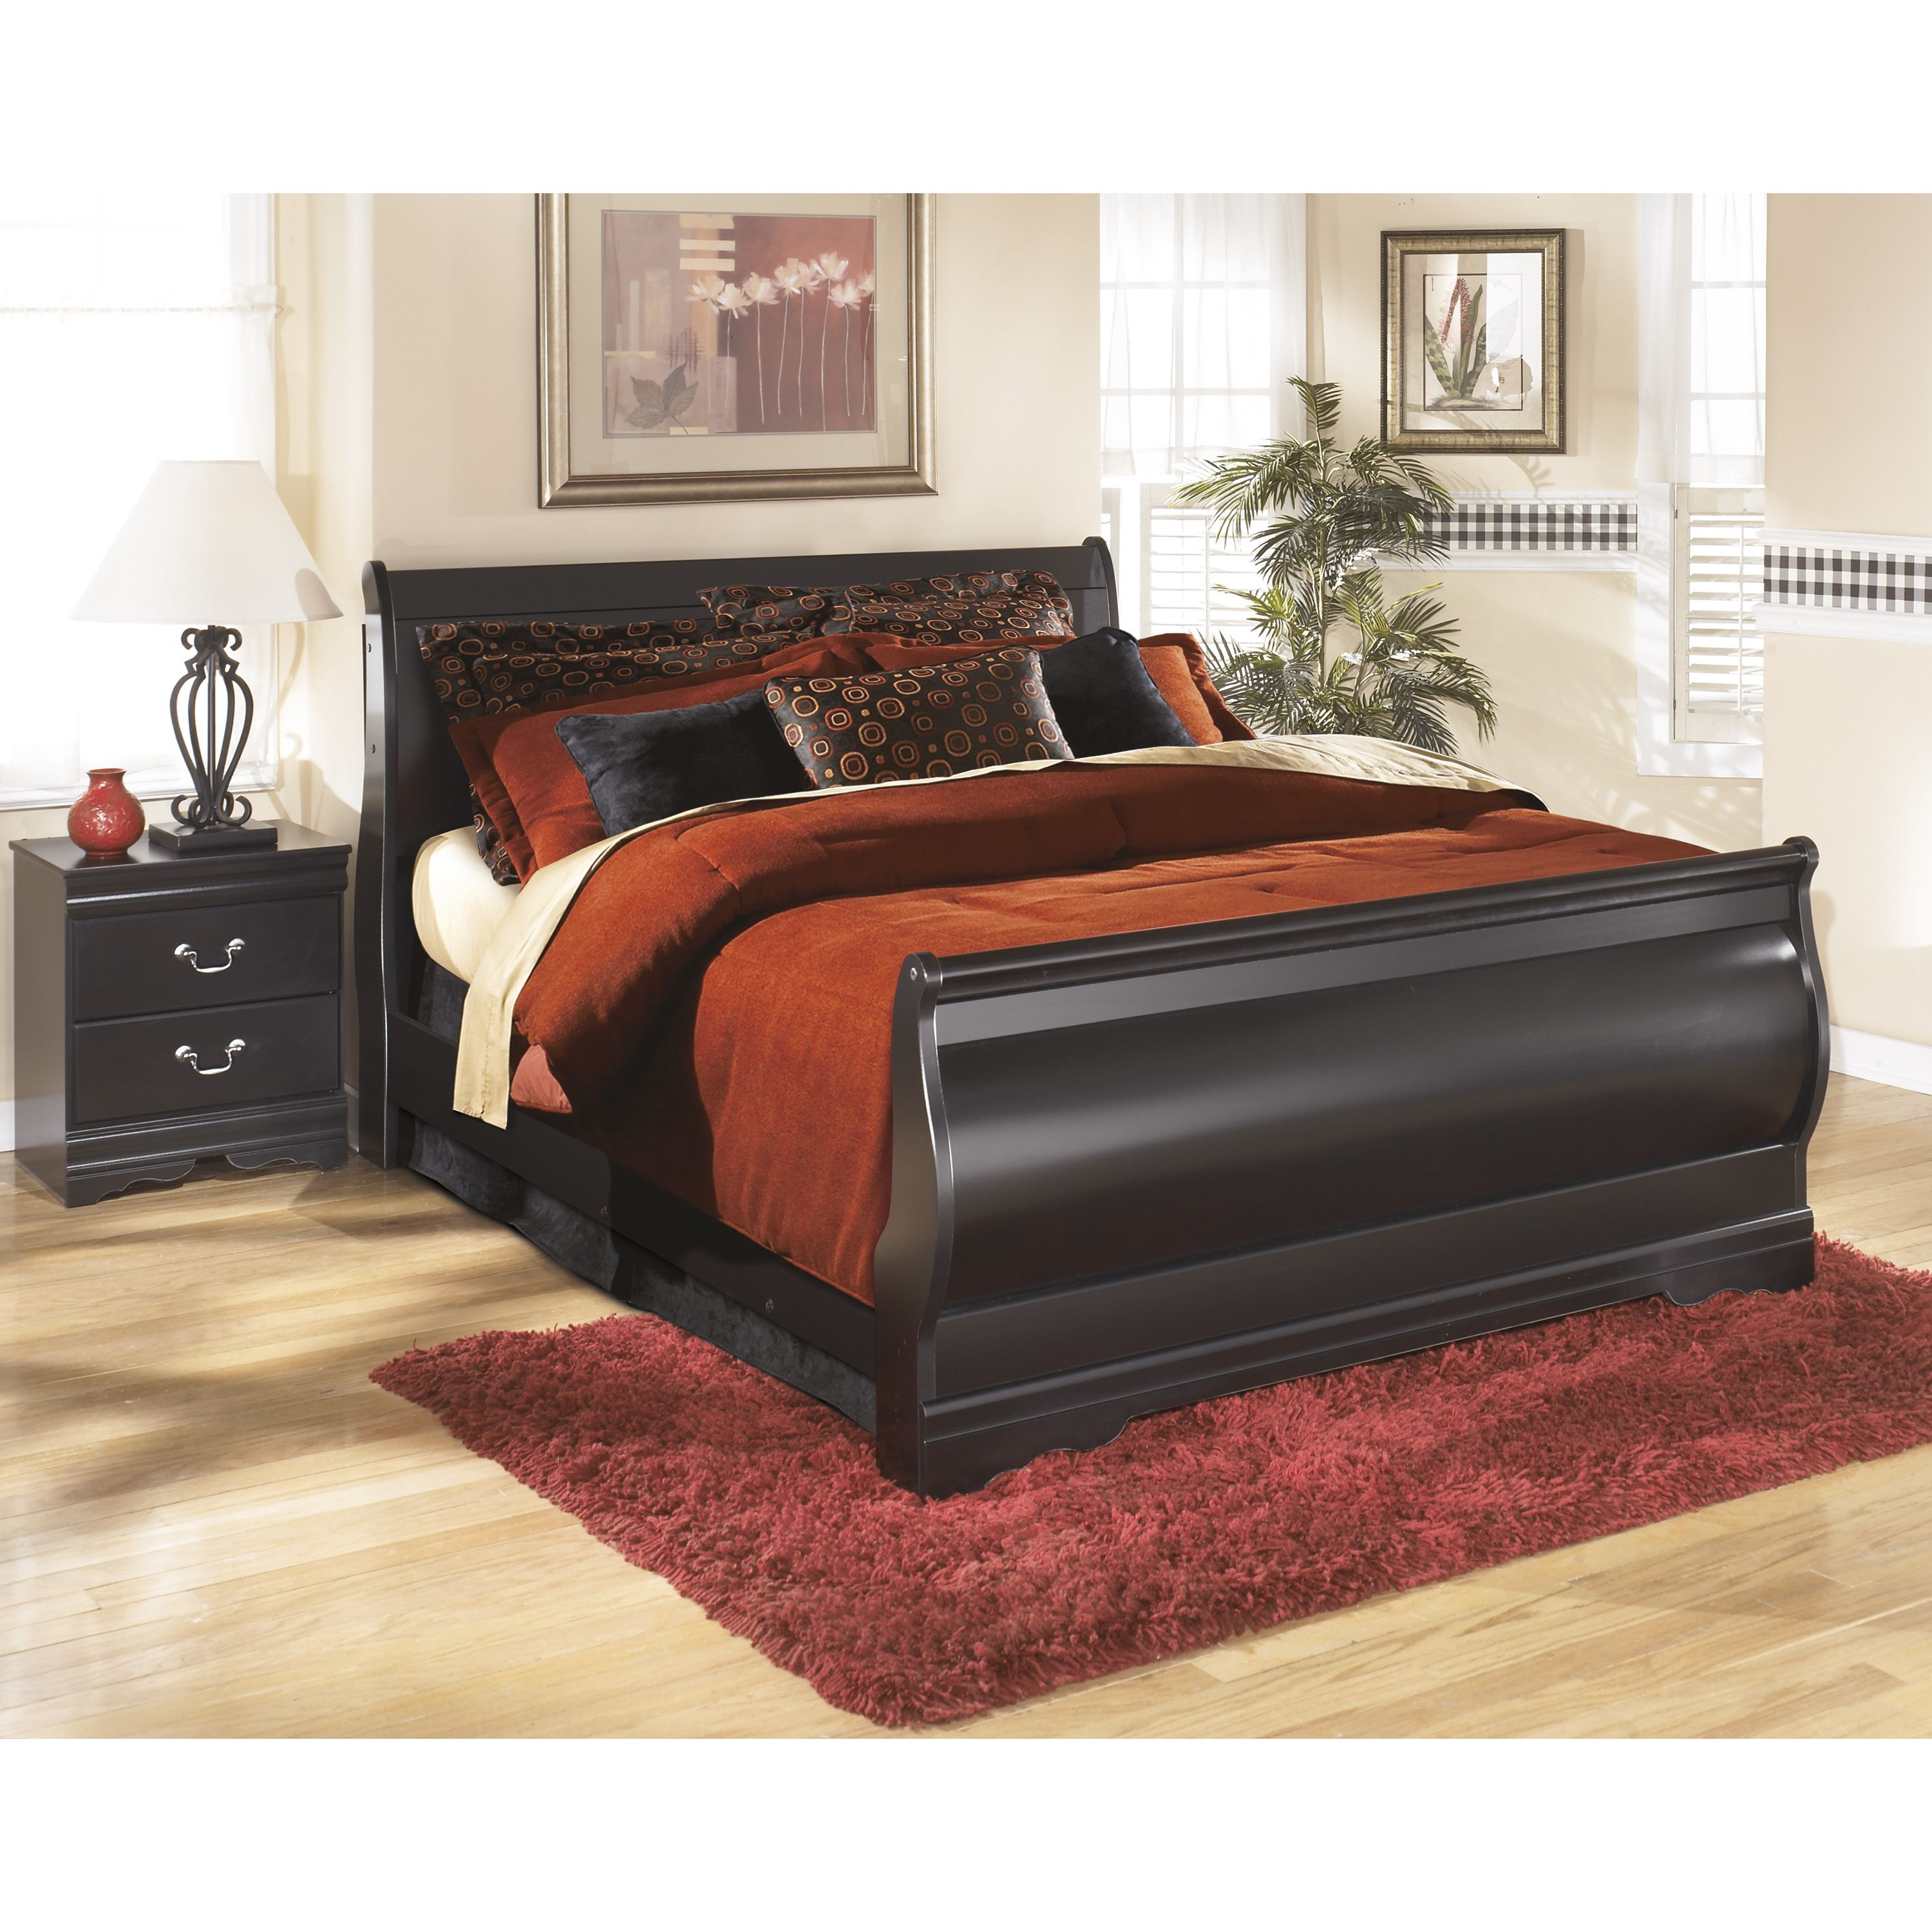 Signature Design by Ashley Huey Vineyard Black Sleigh Bed by